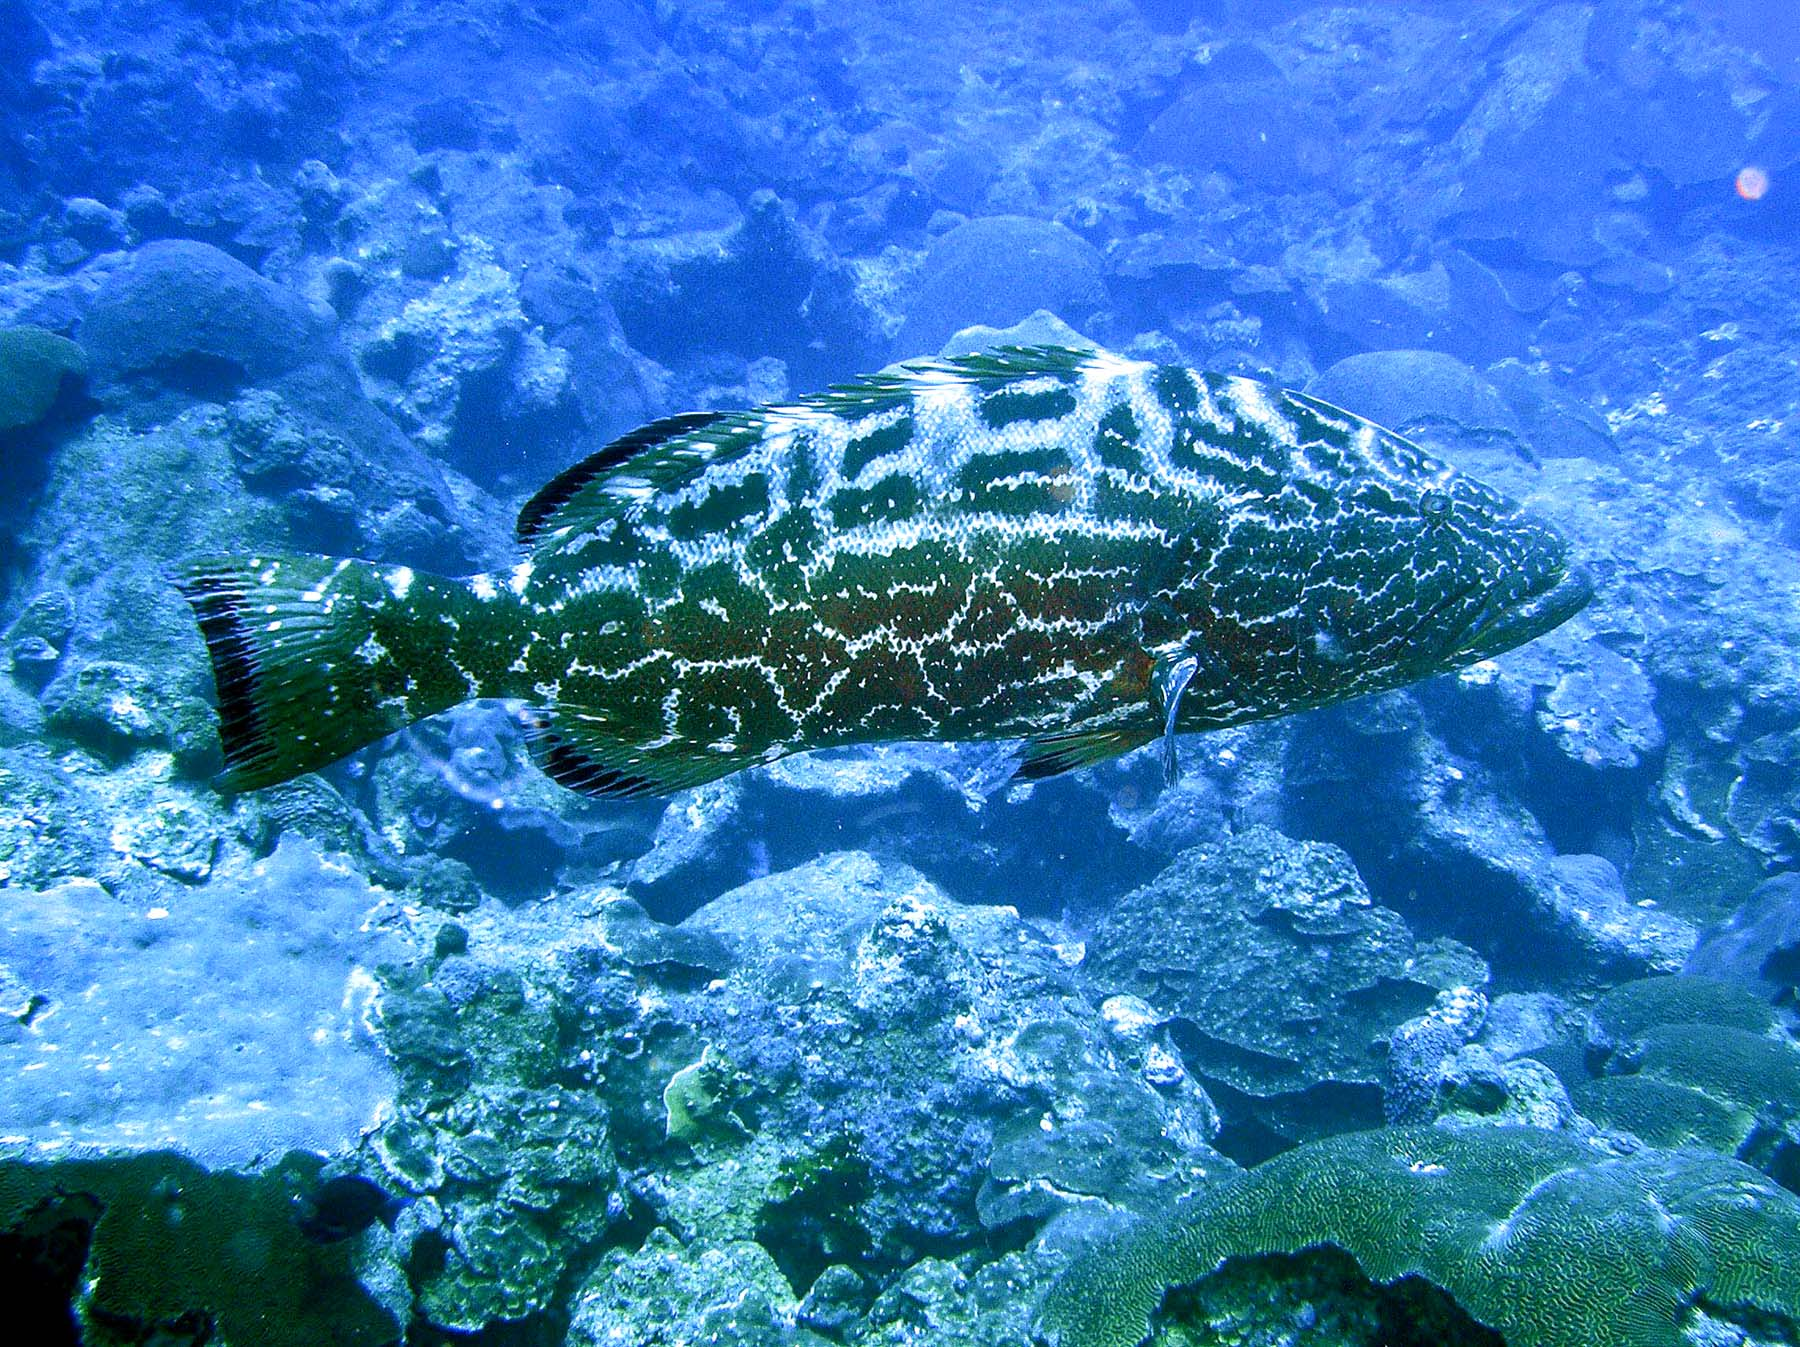 Grouper and butterfly fish are just a few of the species you will see in the sanctuary waters. (photo courtesy of NOAA)